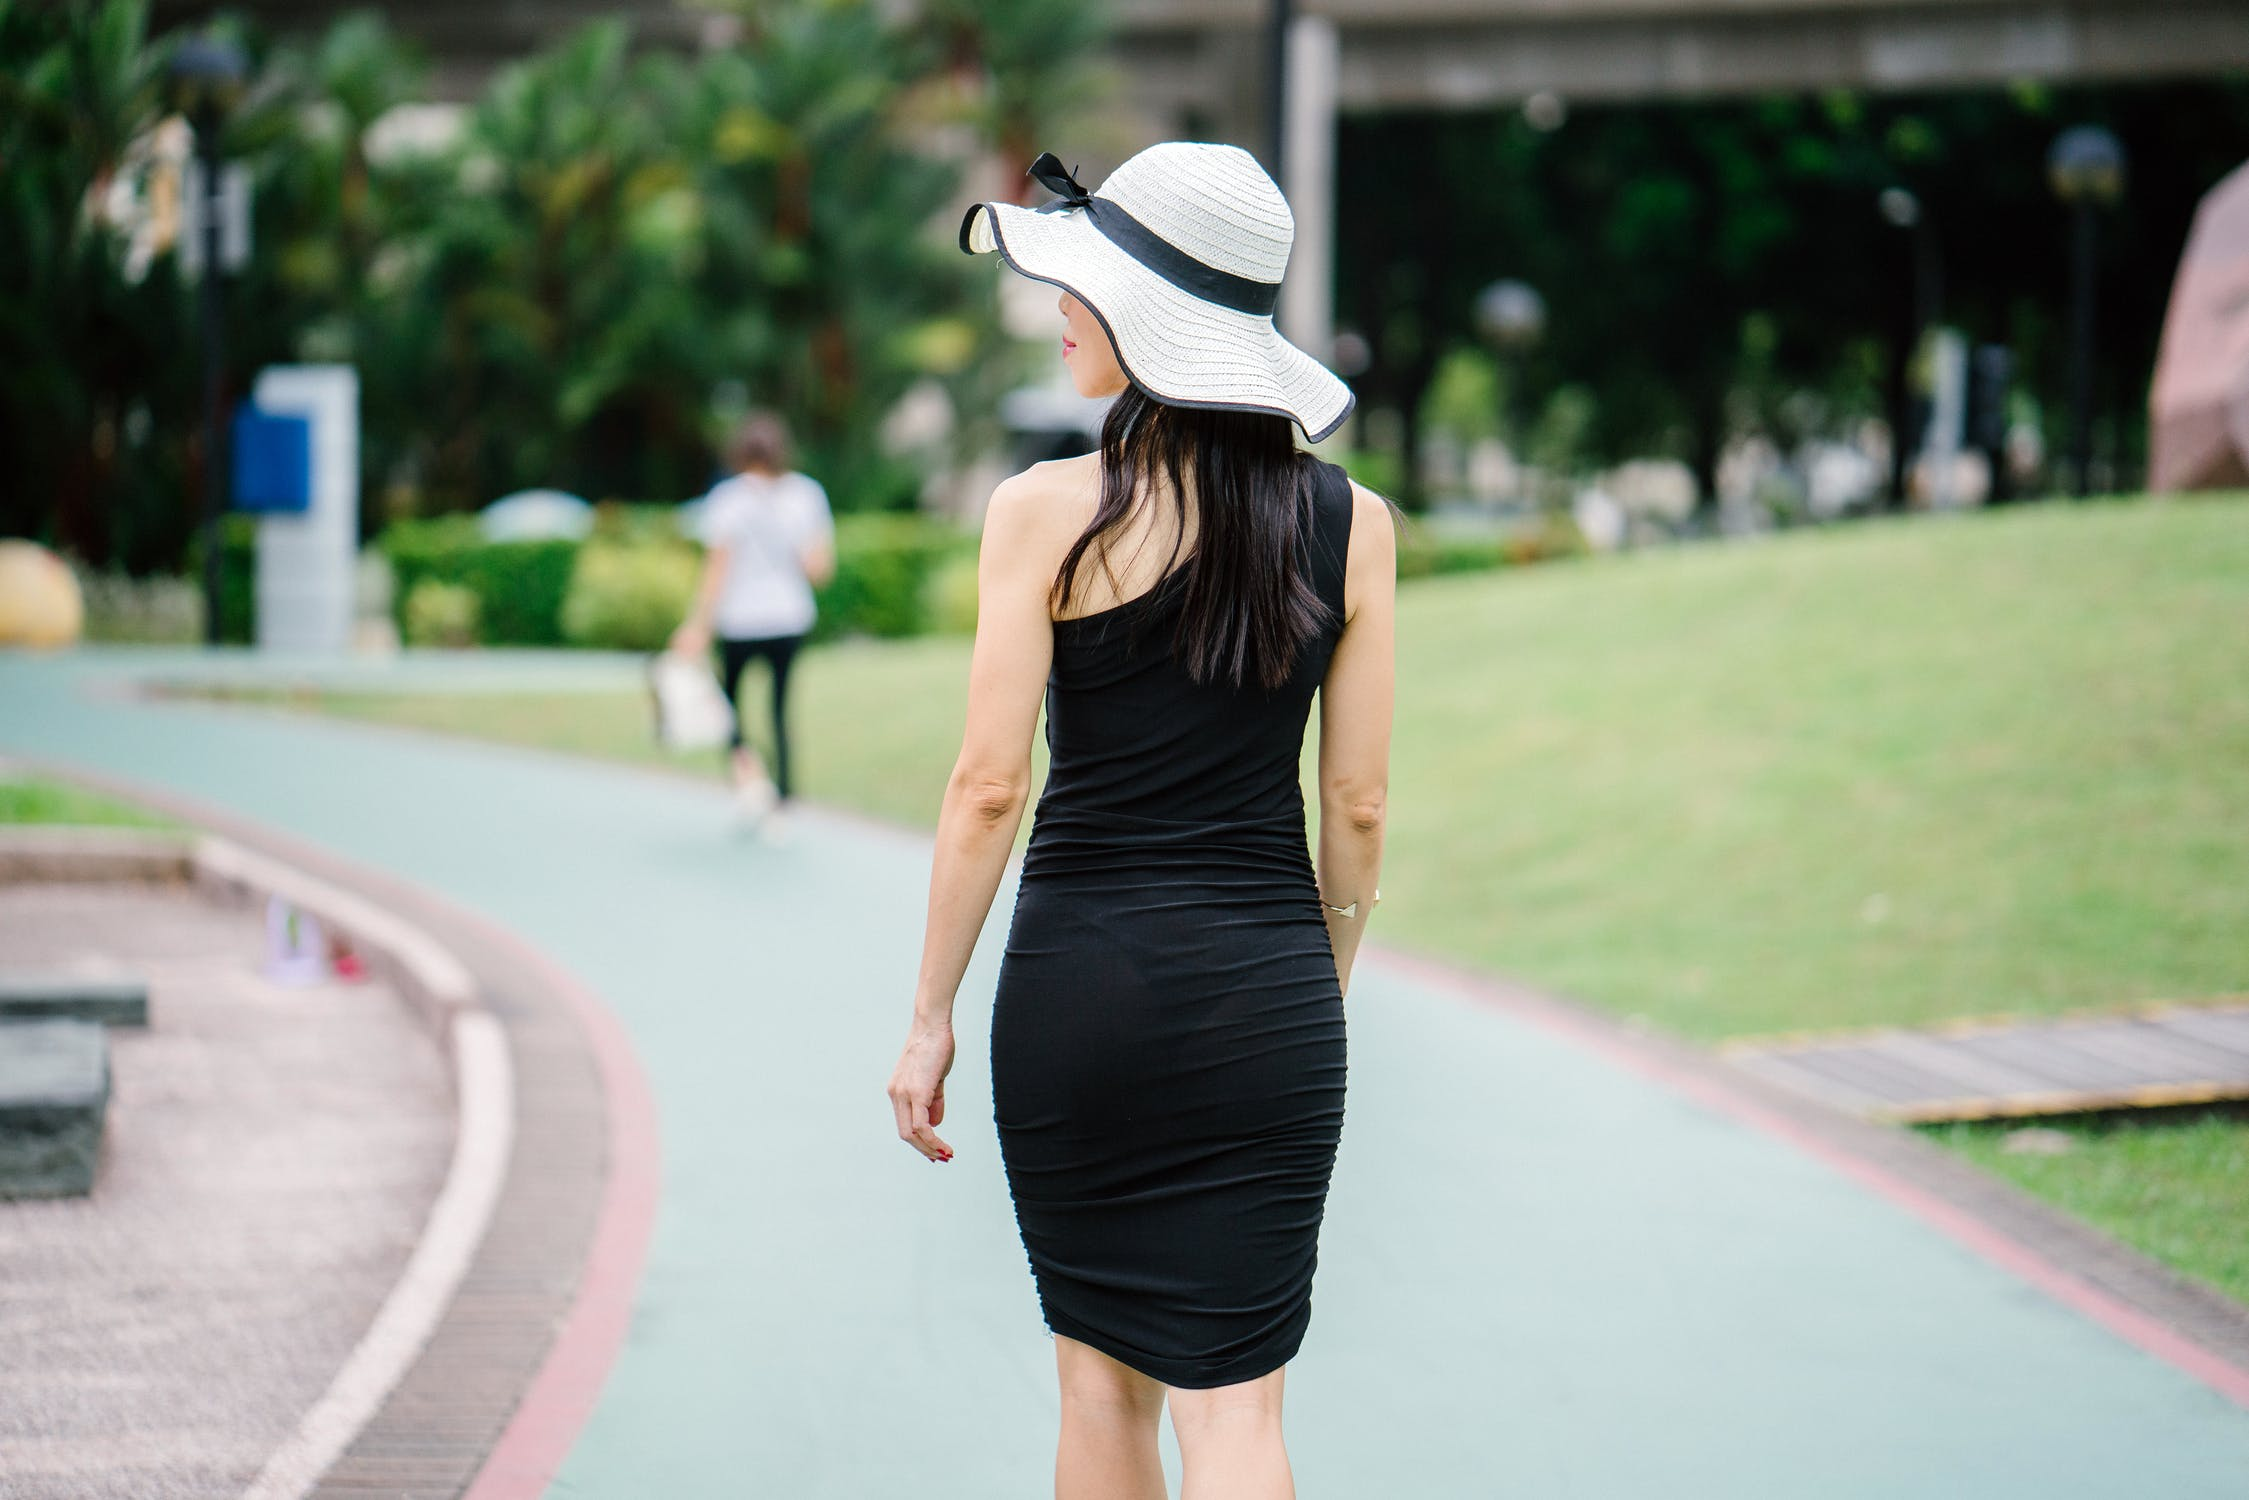 pexels photo 1306585 - TOP 5 BLACK DRESSES BY REBELLIOUS FASHION UNDER £ 5.00 - Sale is On!